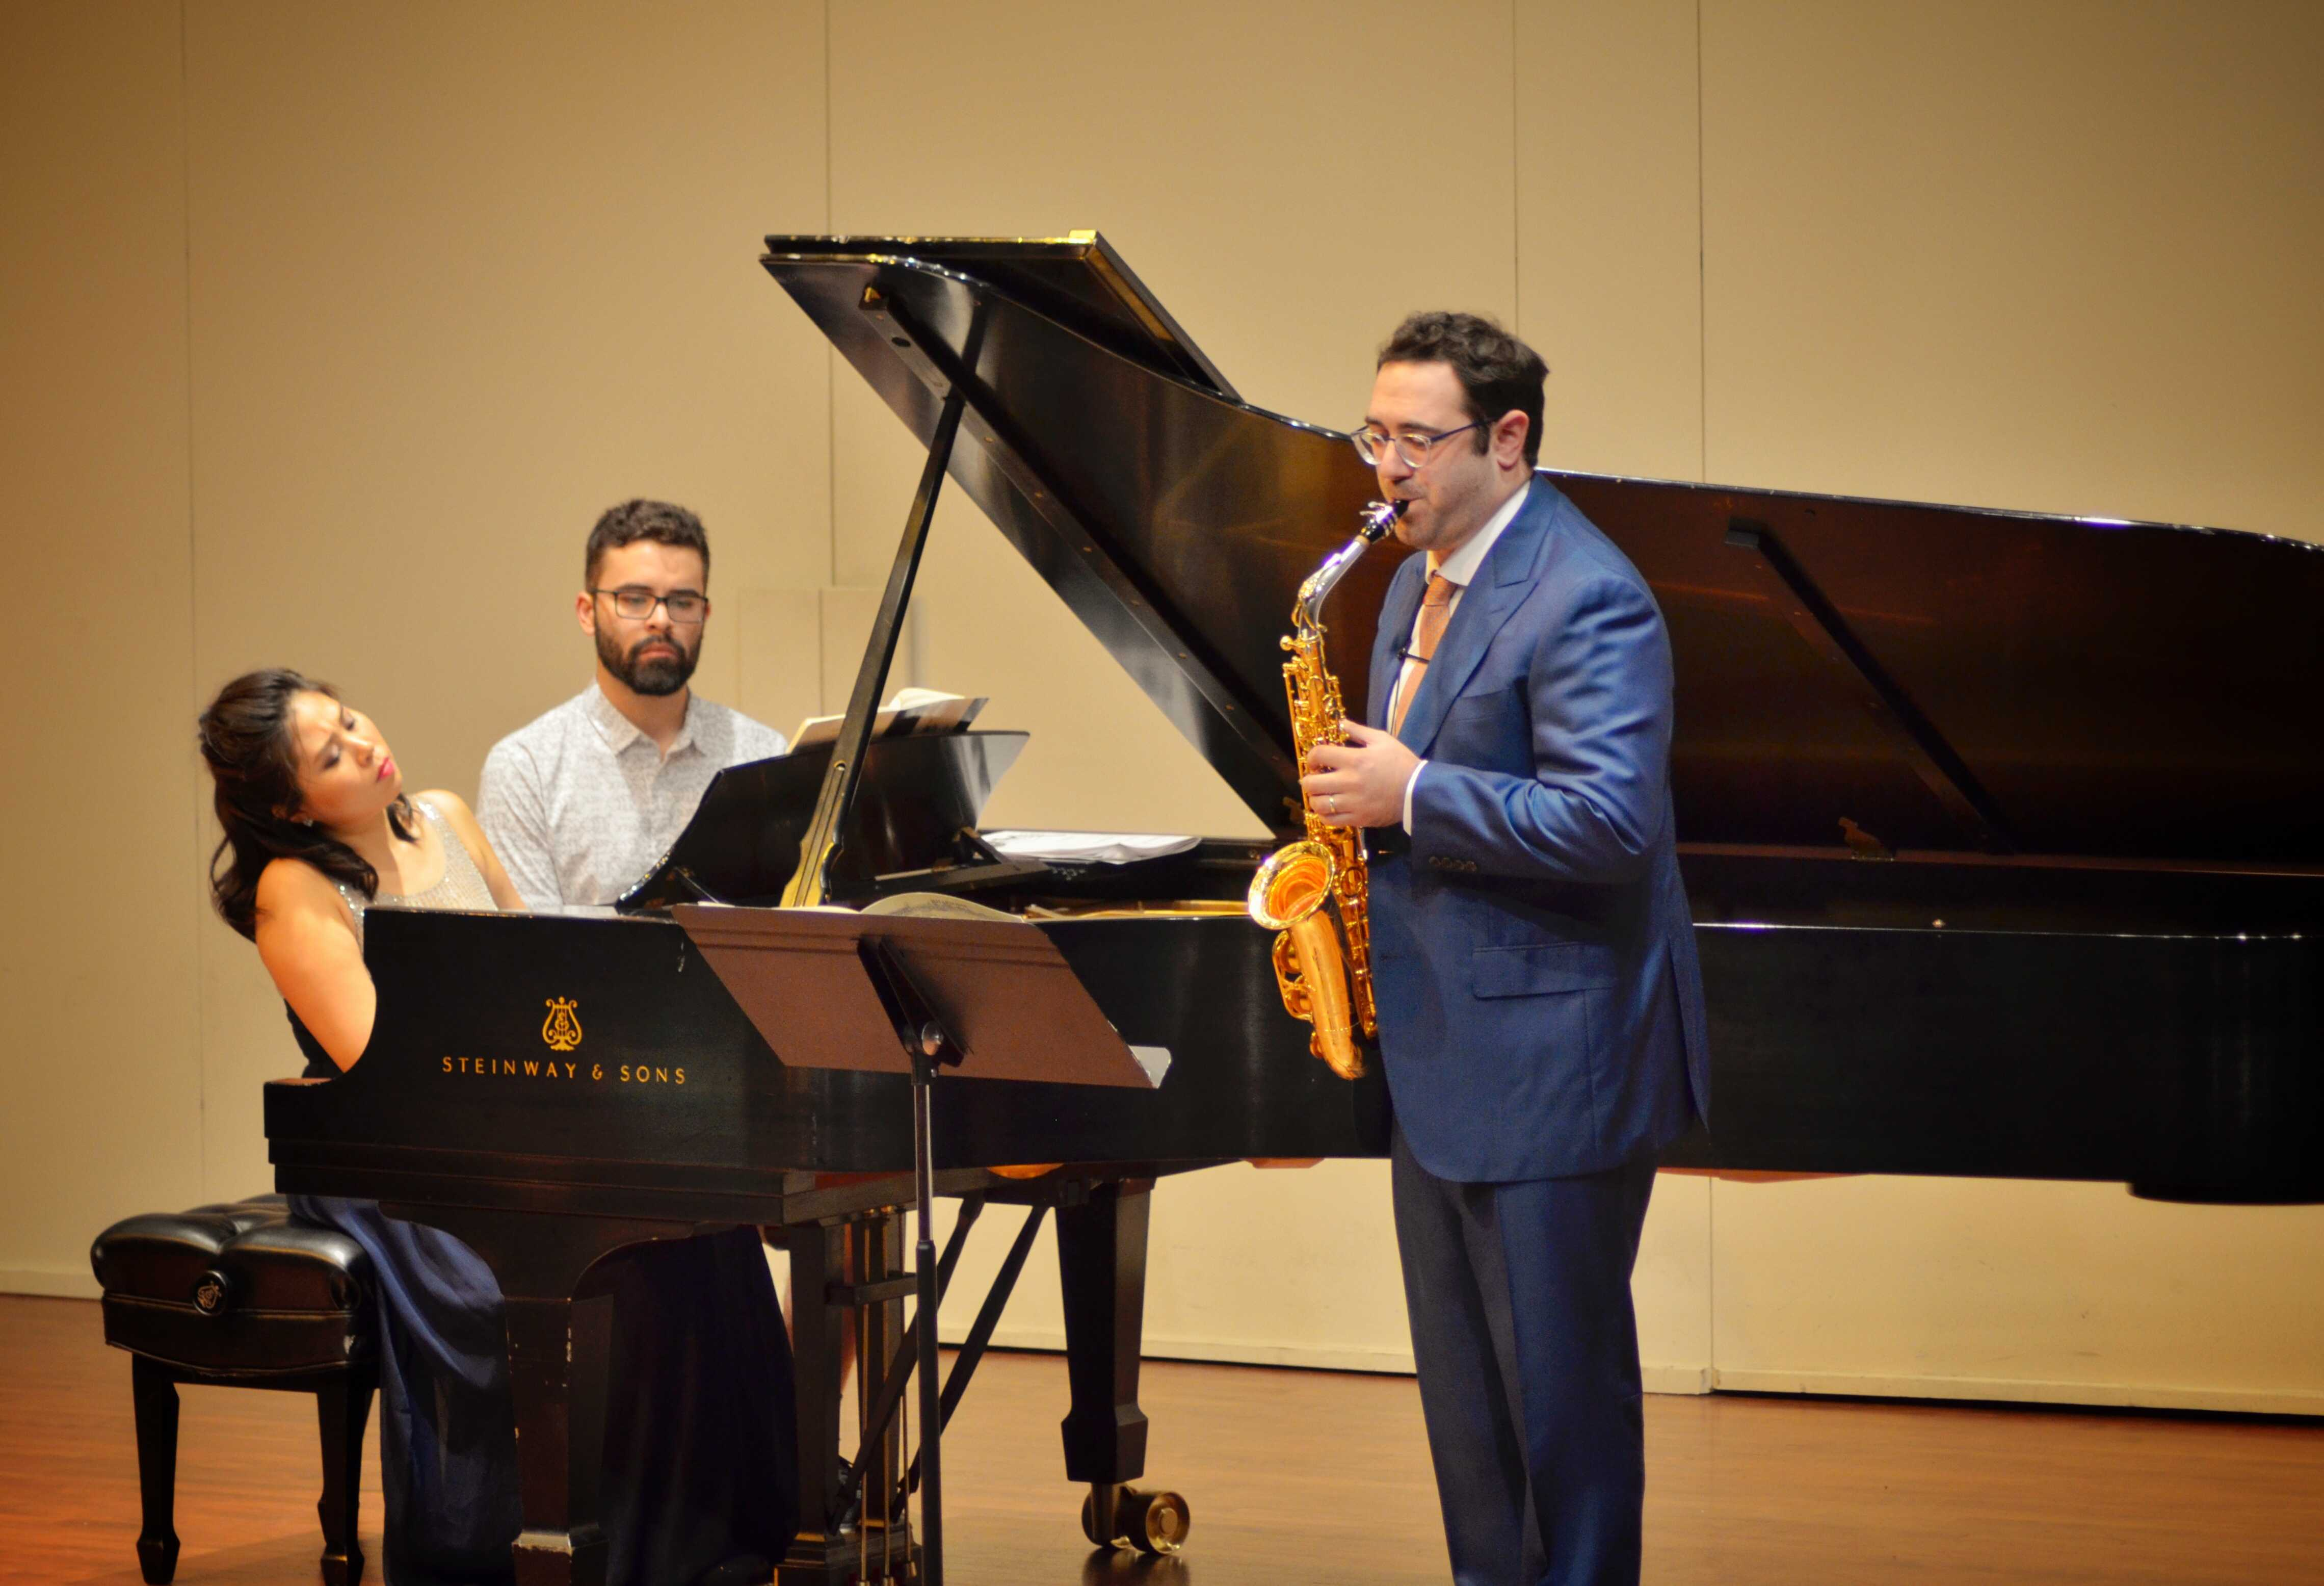 Dr. Benjamin Sorrell (right) and pianist Akina Motoyama (left) with assistant playing at the Cypress Recital Hall. 10/22/2017 Photo credit: Nick Rose